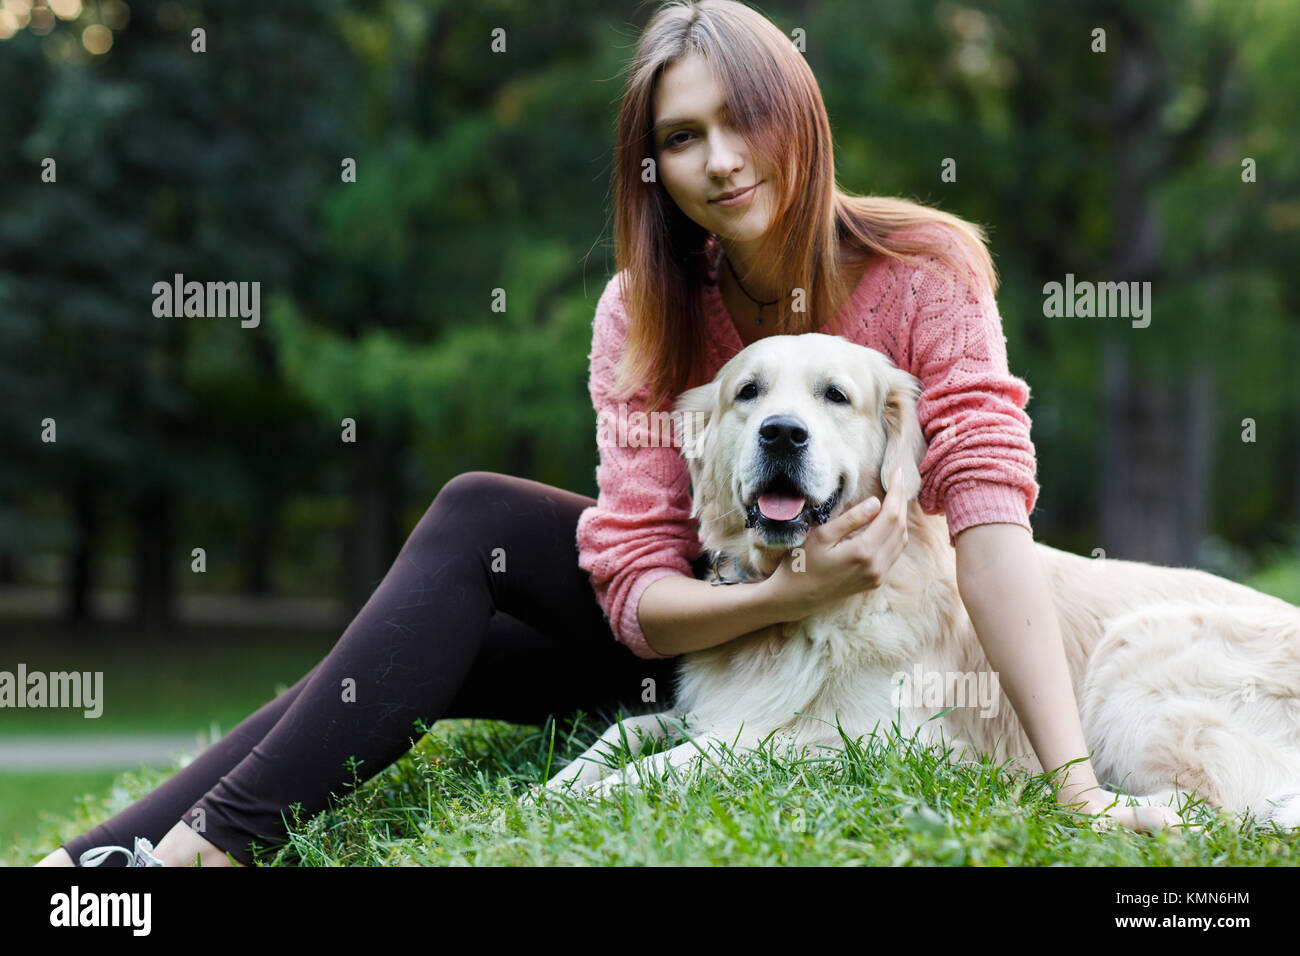 Image of woman and dog sitting on lawn - Stock Image